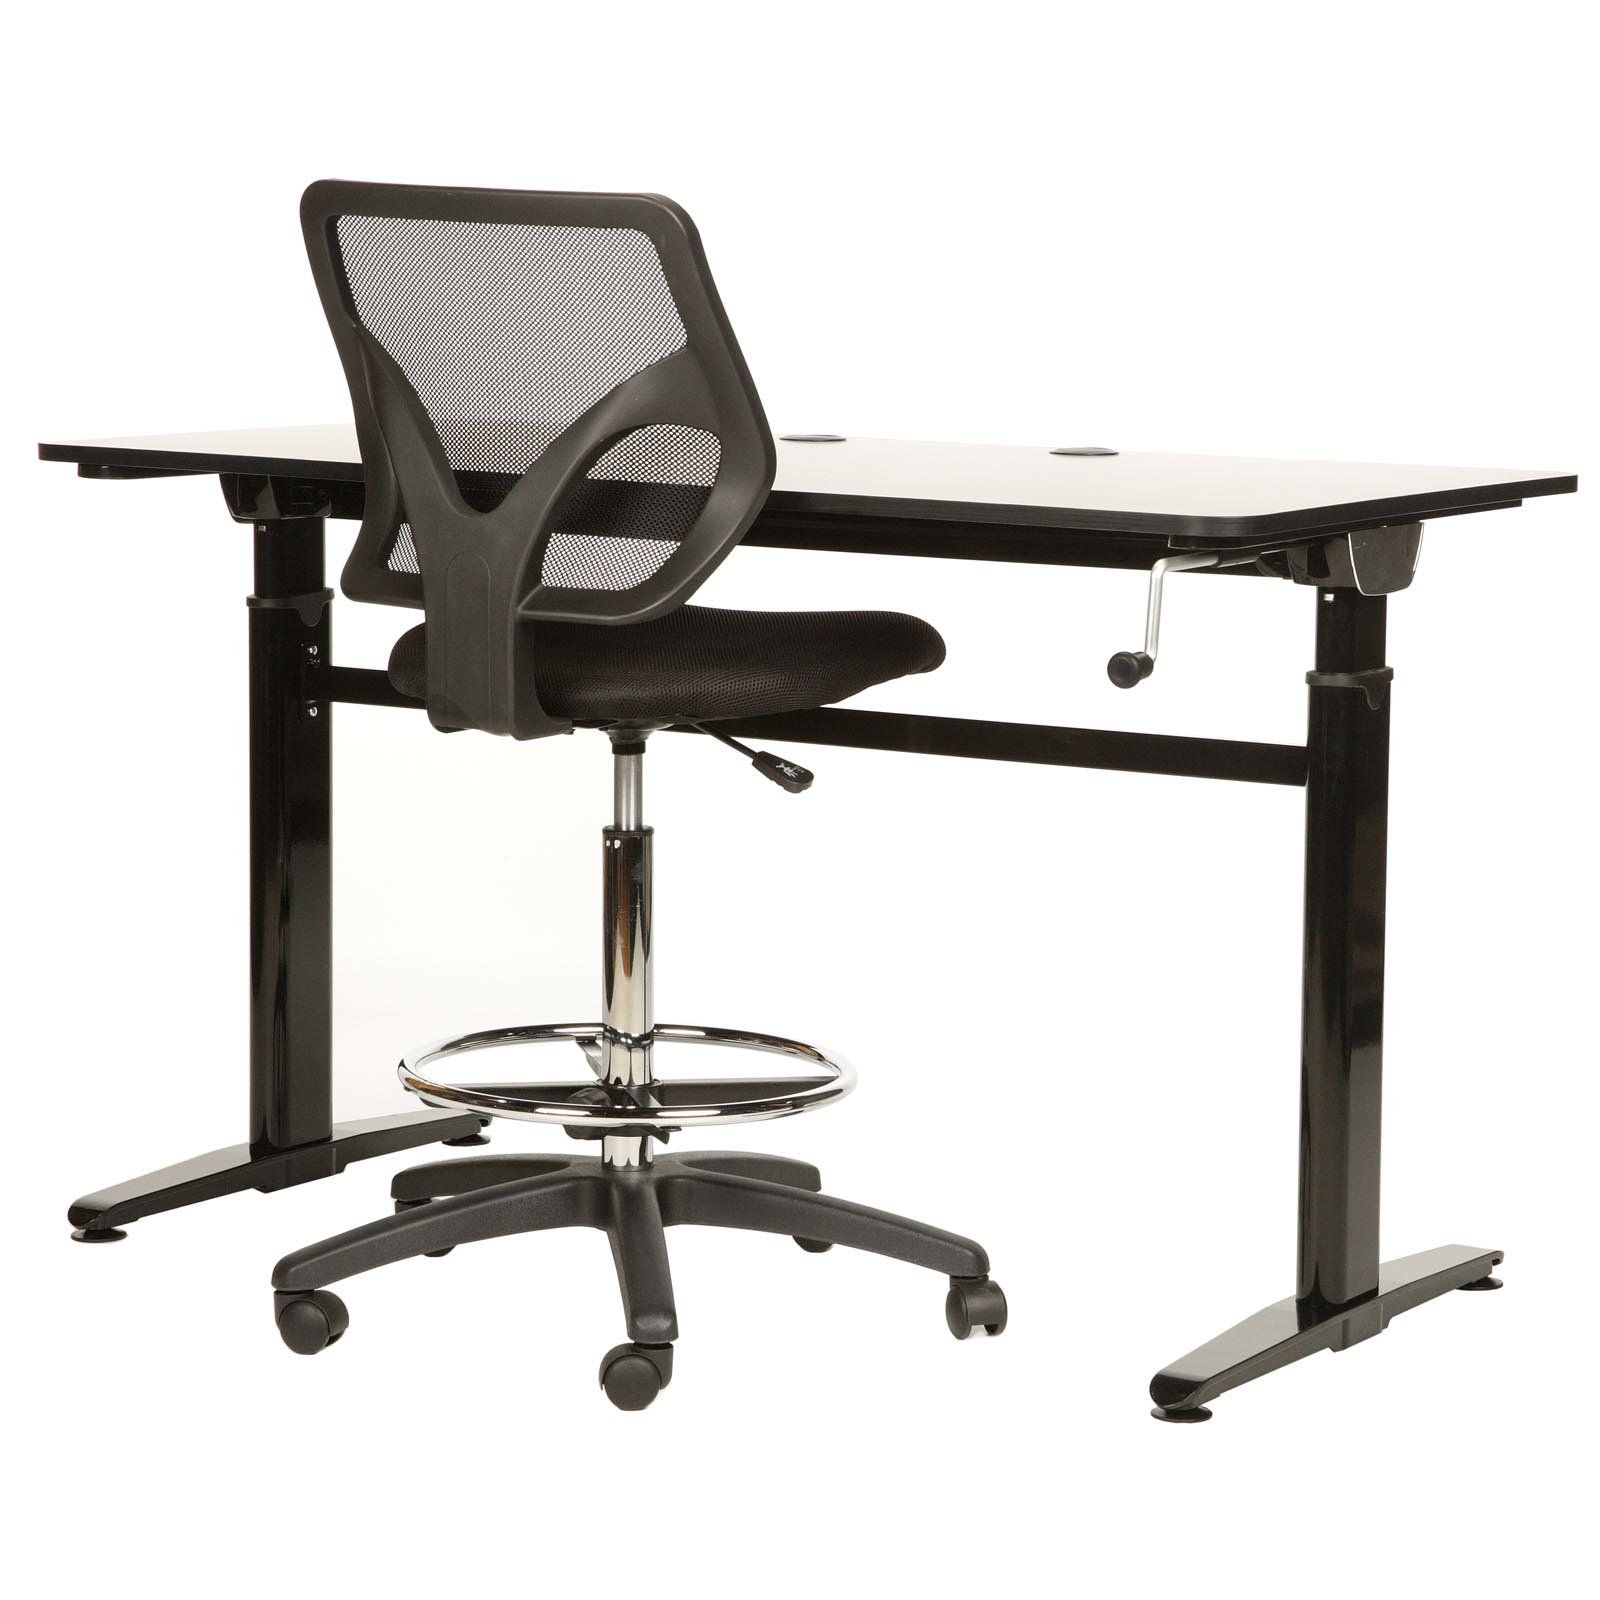 Cool living stand up desk or chair you can get more